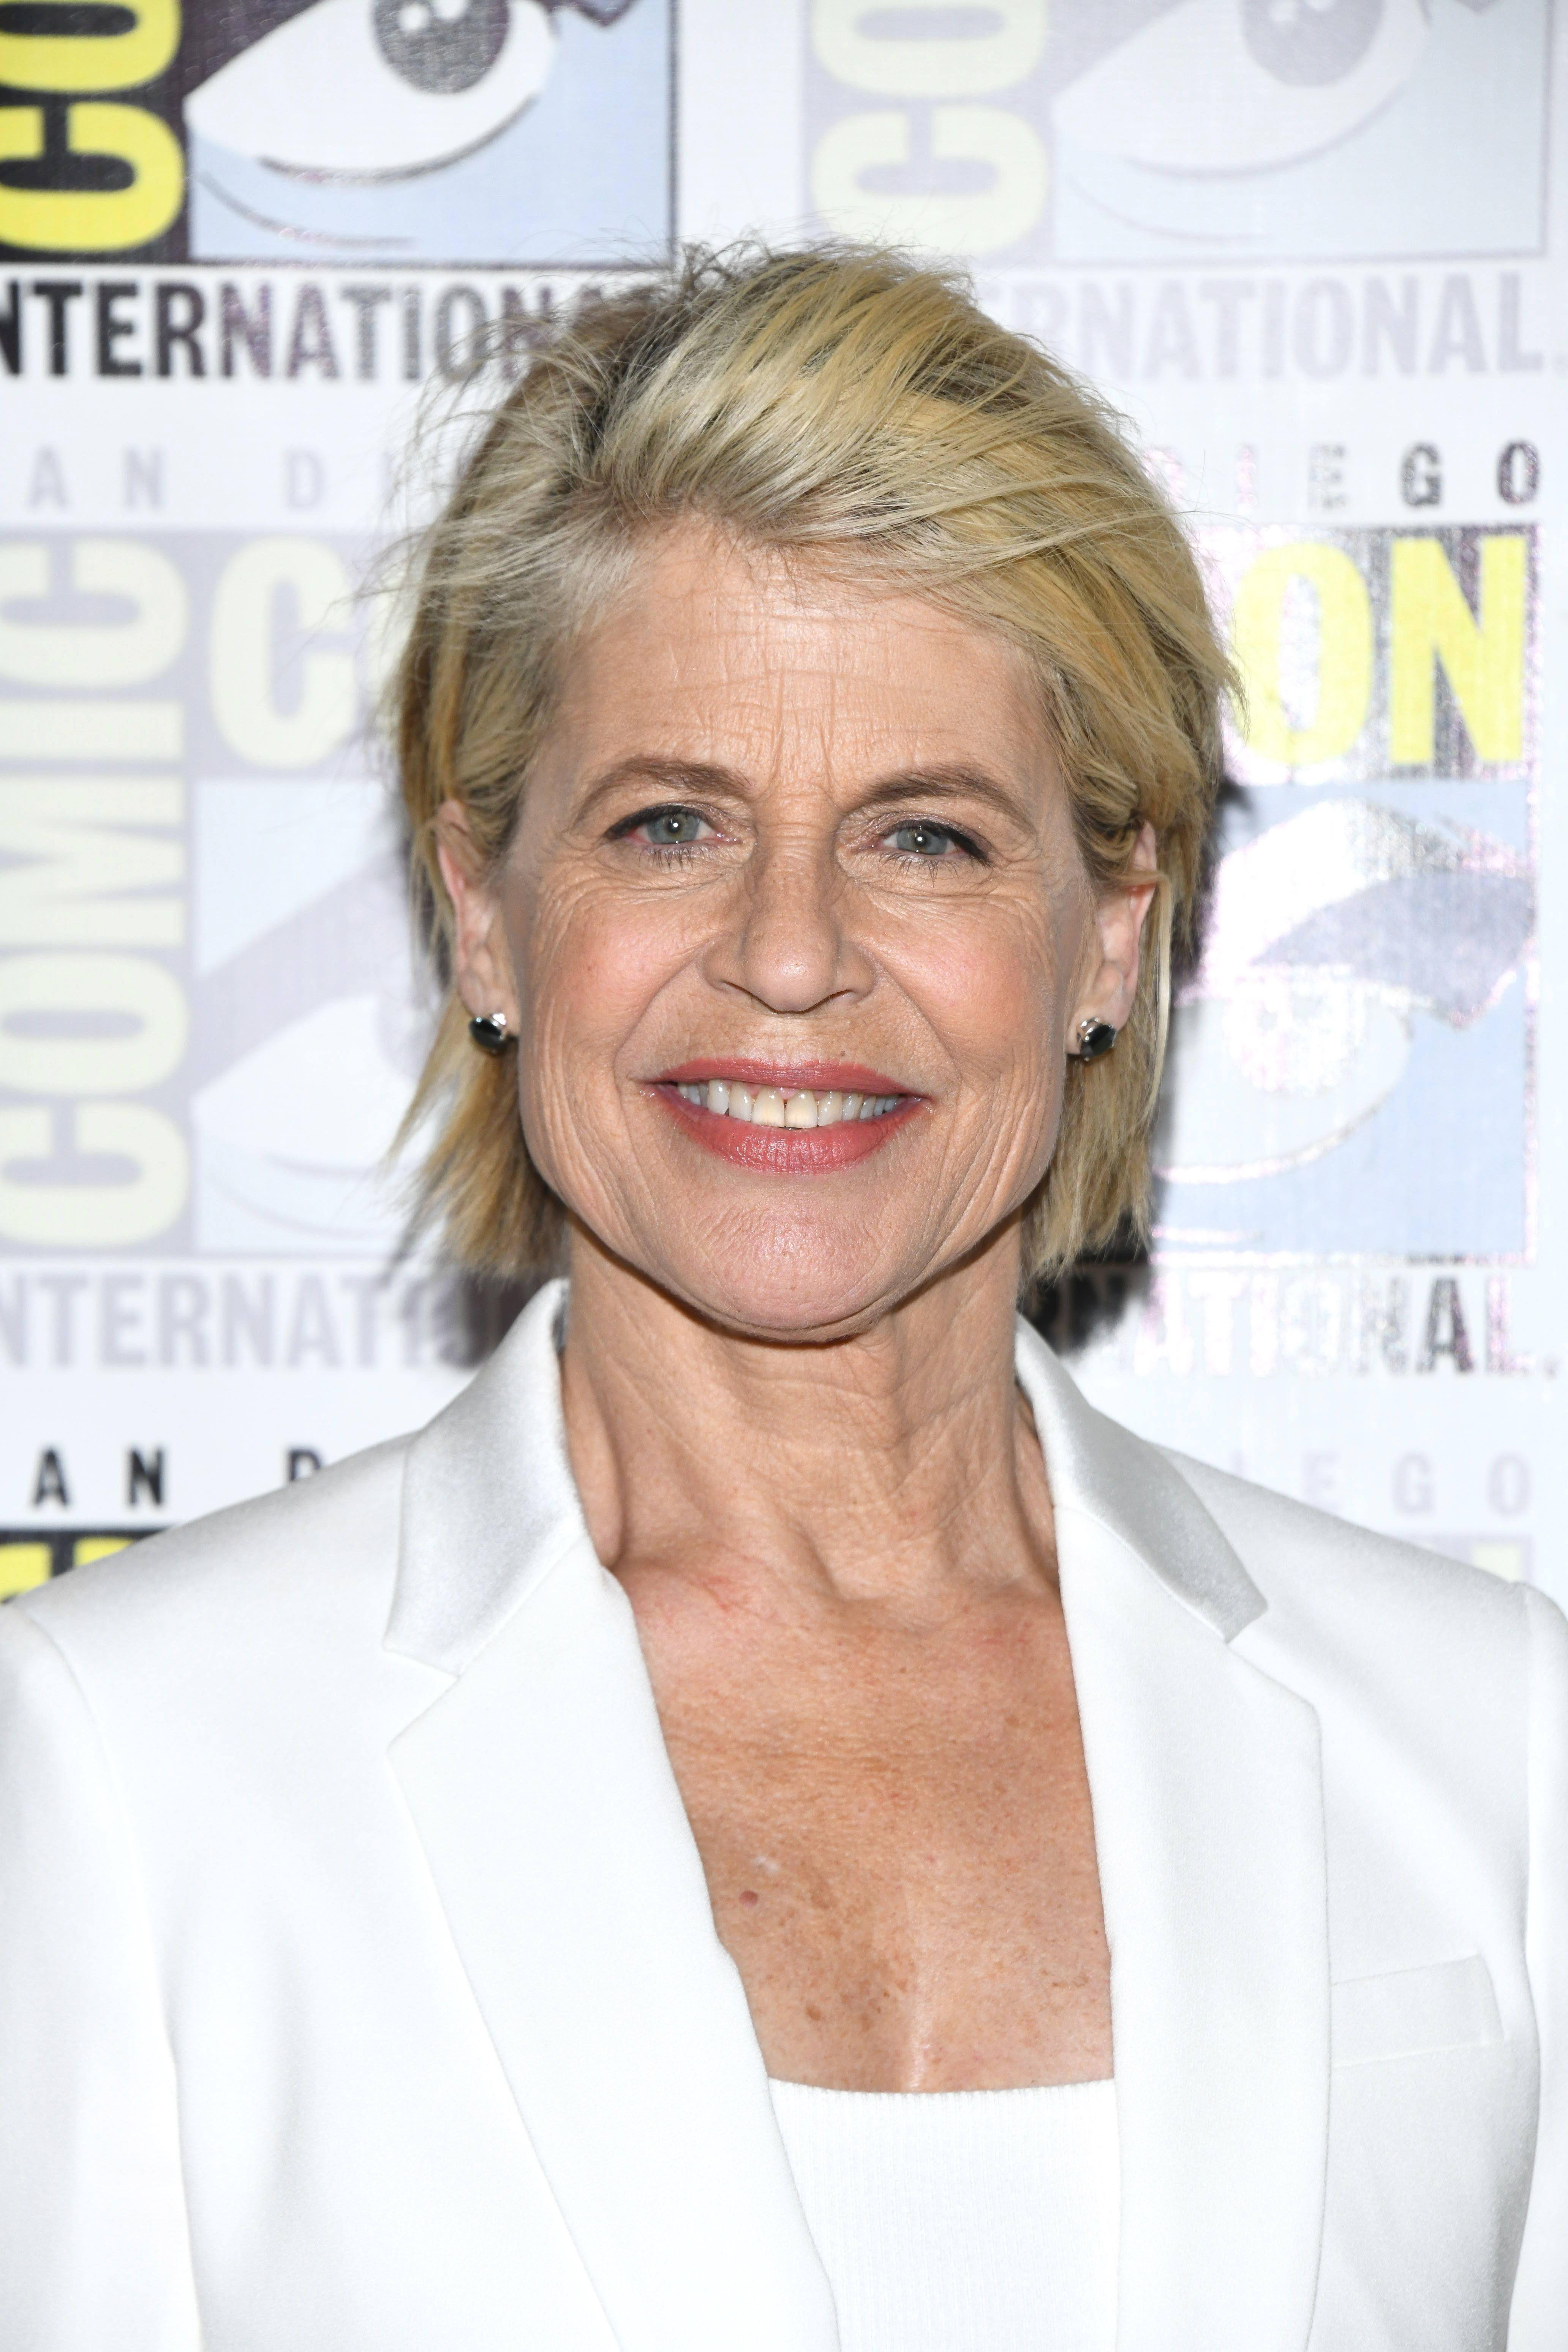 Linda Hamilton Reveals She's Been Celibate for More Than 15